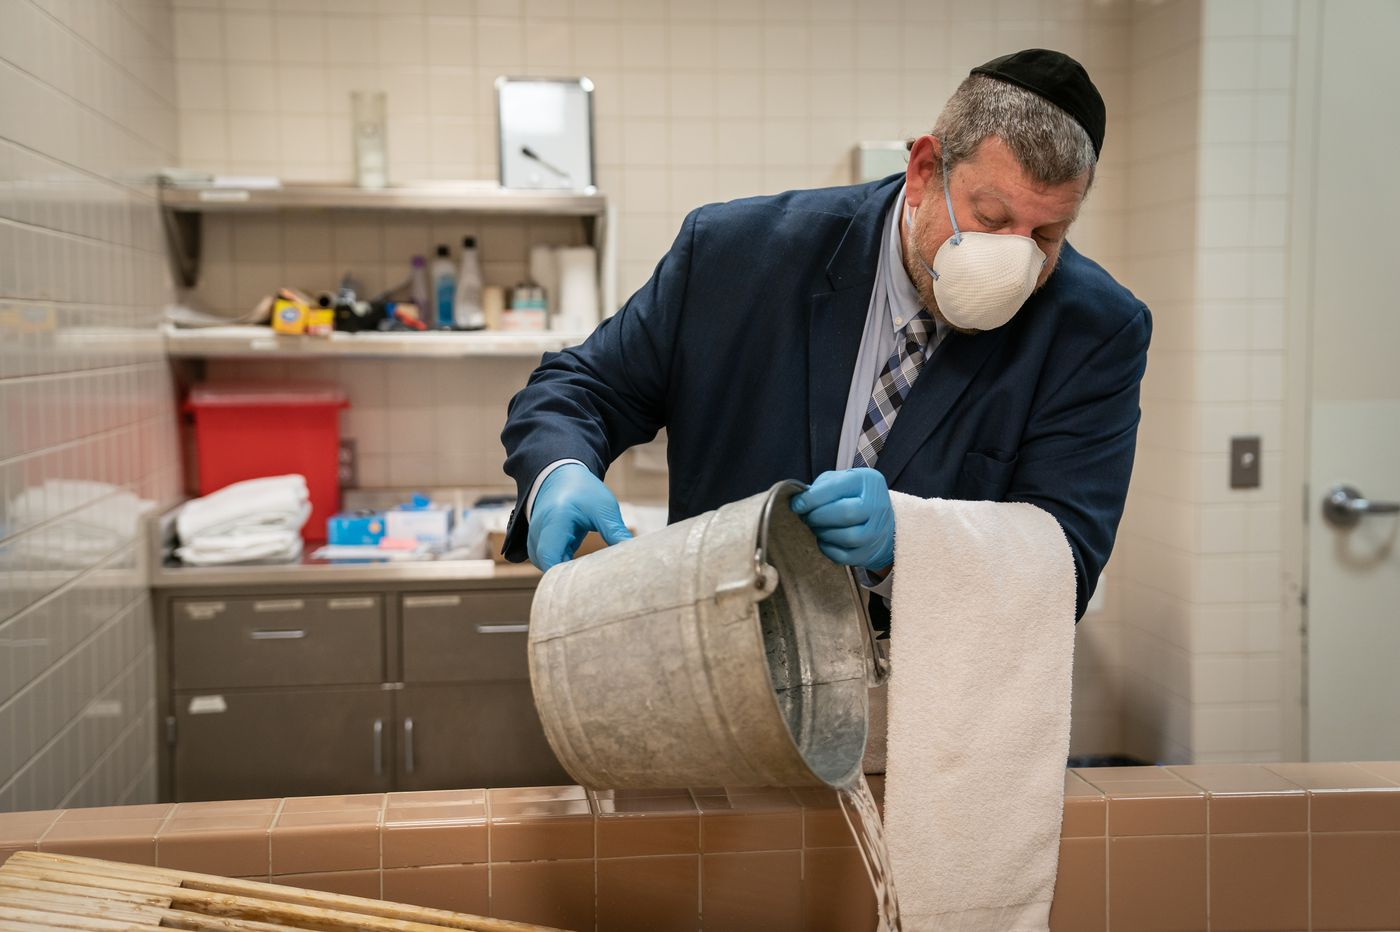 'We ask forgiveness from the dead': Why Jewish volunteers are washing bodies in a pandemic